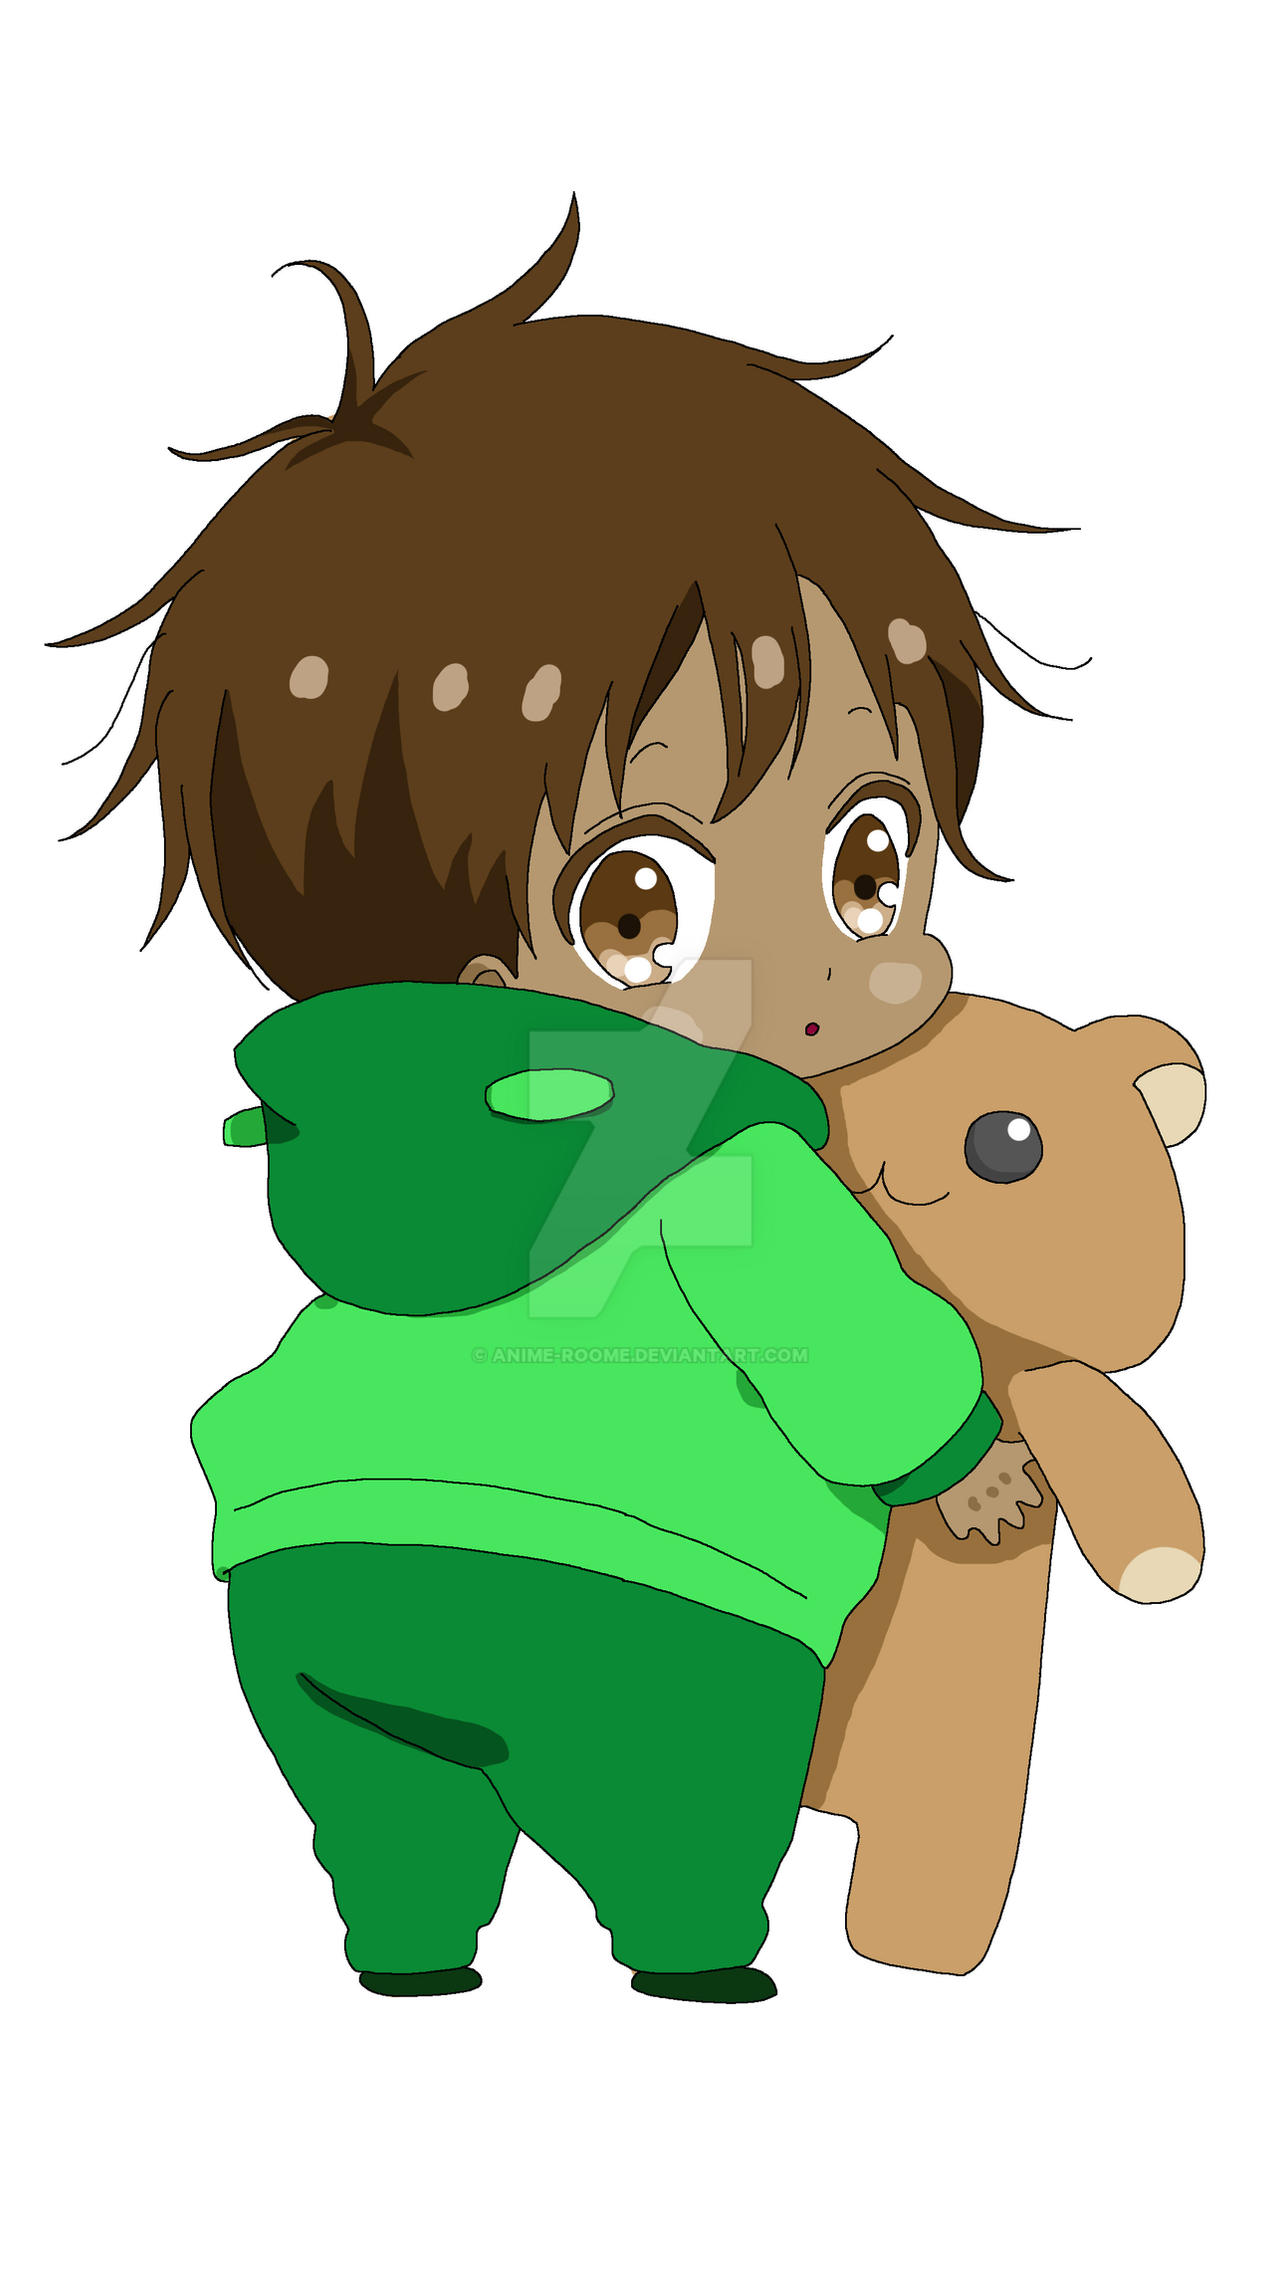 Baby Boy With Bear Mixed Race By Anime Roome On Deviantart